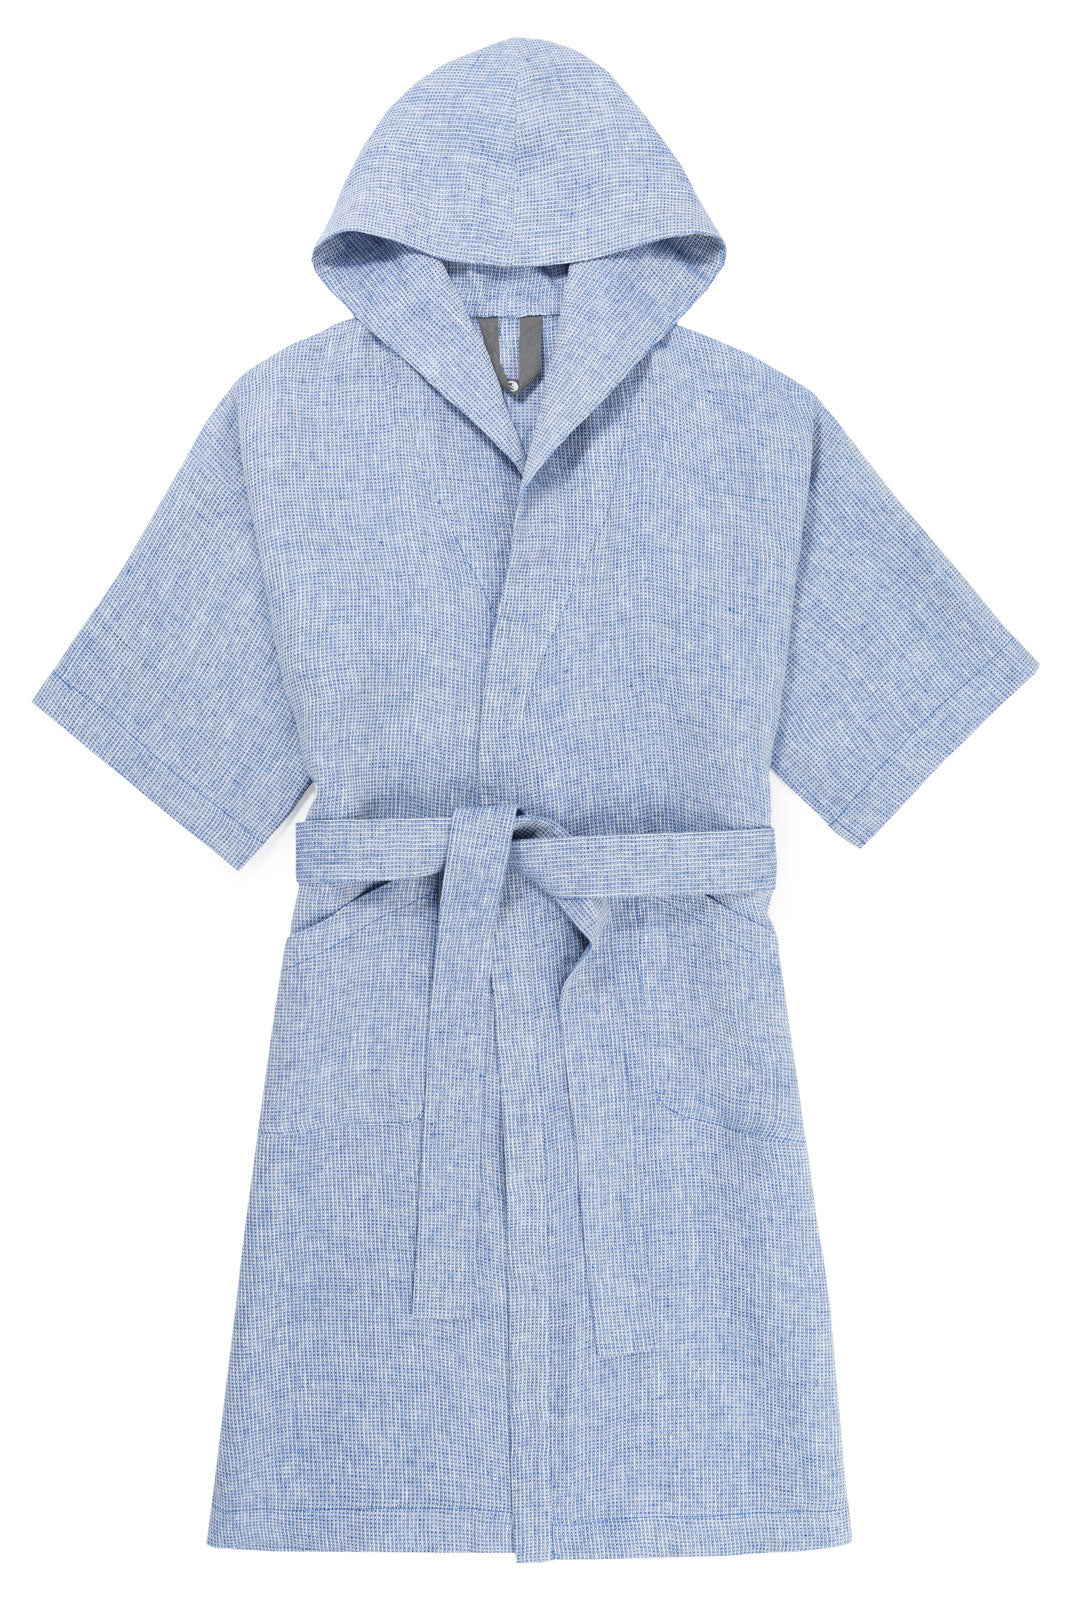 Flat Front image of the Grid Linen Bathrobe.